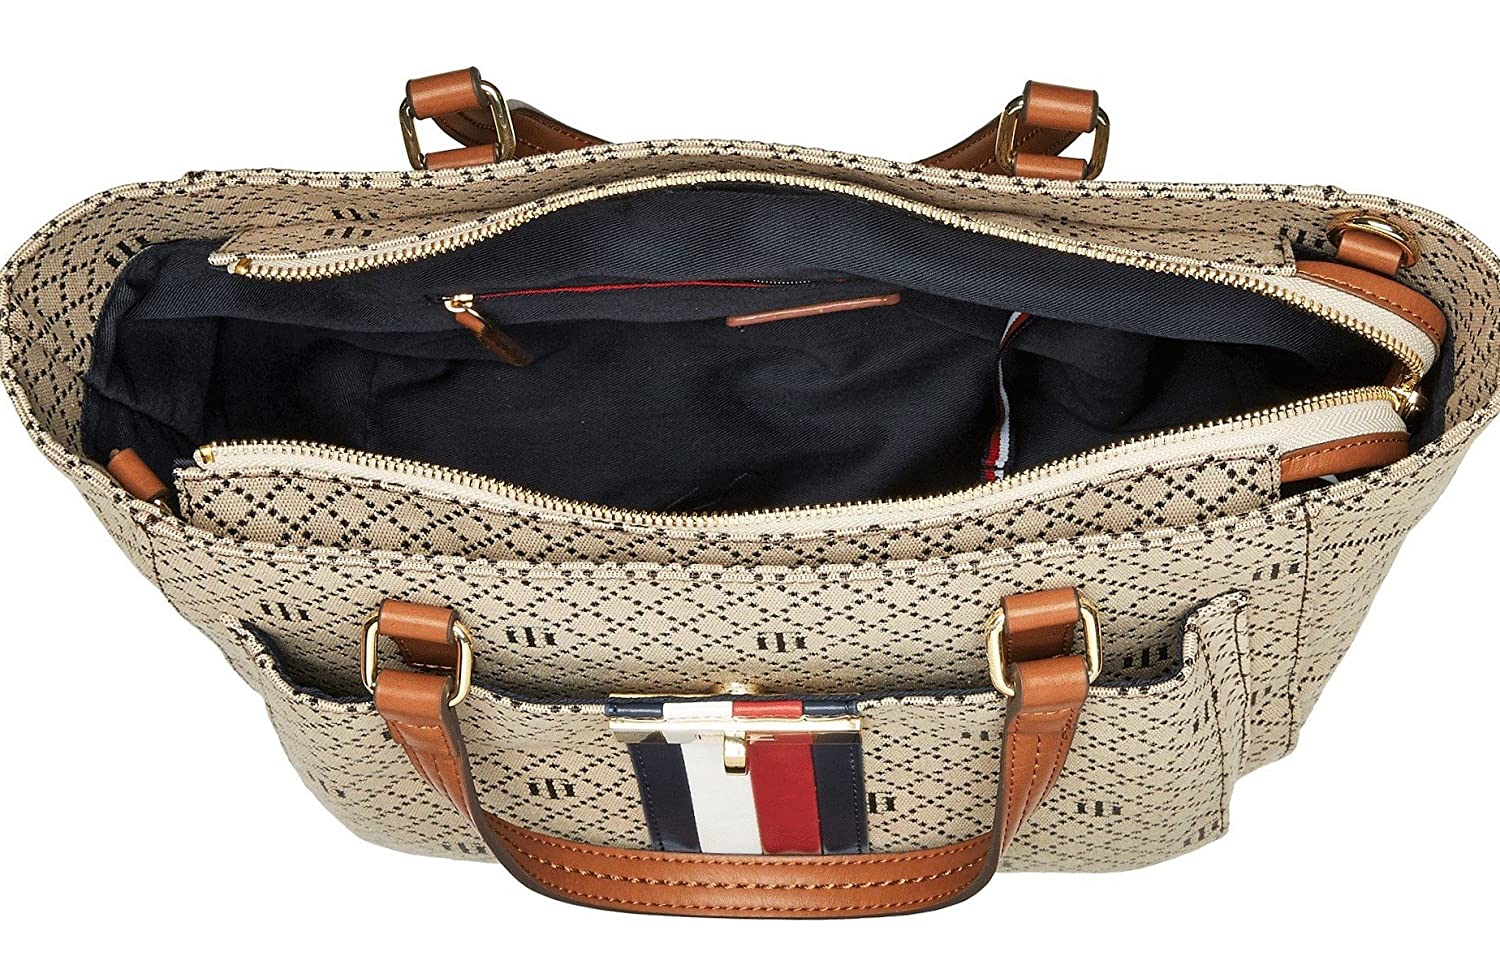 64648d99b628 Tommy Hilfiger Women s Angie Shopper Tan Dark Chocolate One Size  Handbags   Amazon.com